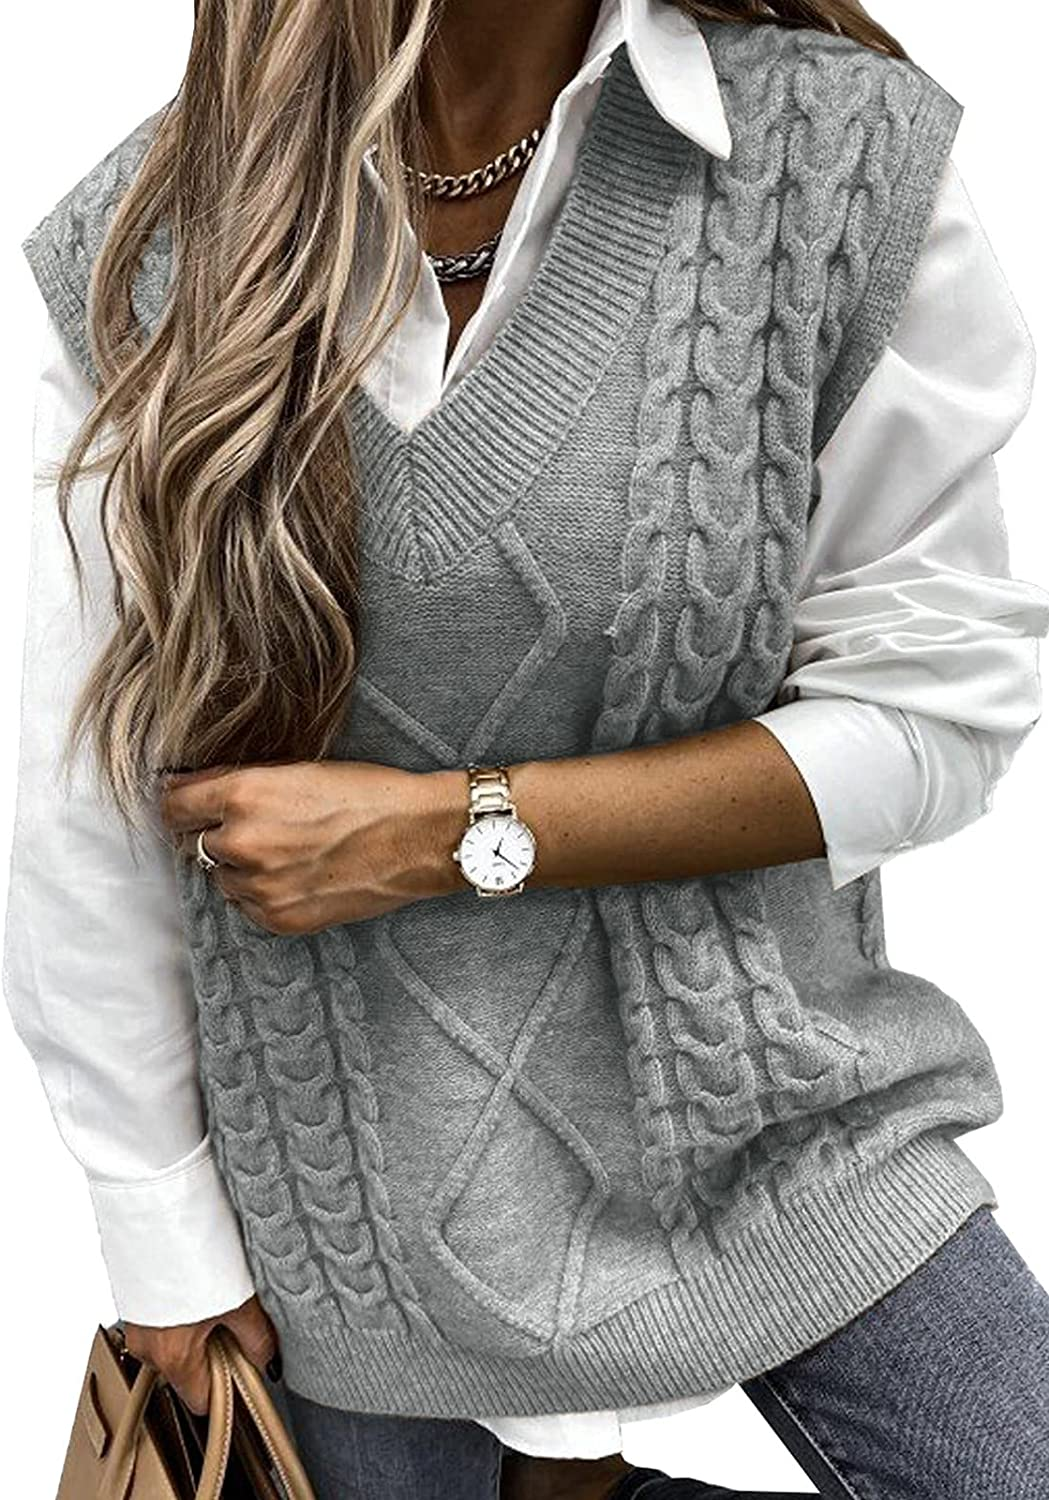 Uusollecy Women V Neck Sweater Vest, Solid Sleeveless Pullover Sweaters, Casual Cable Knit Sweaters for Autumn Winter